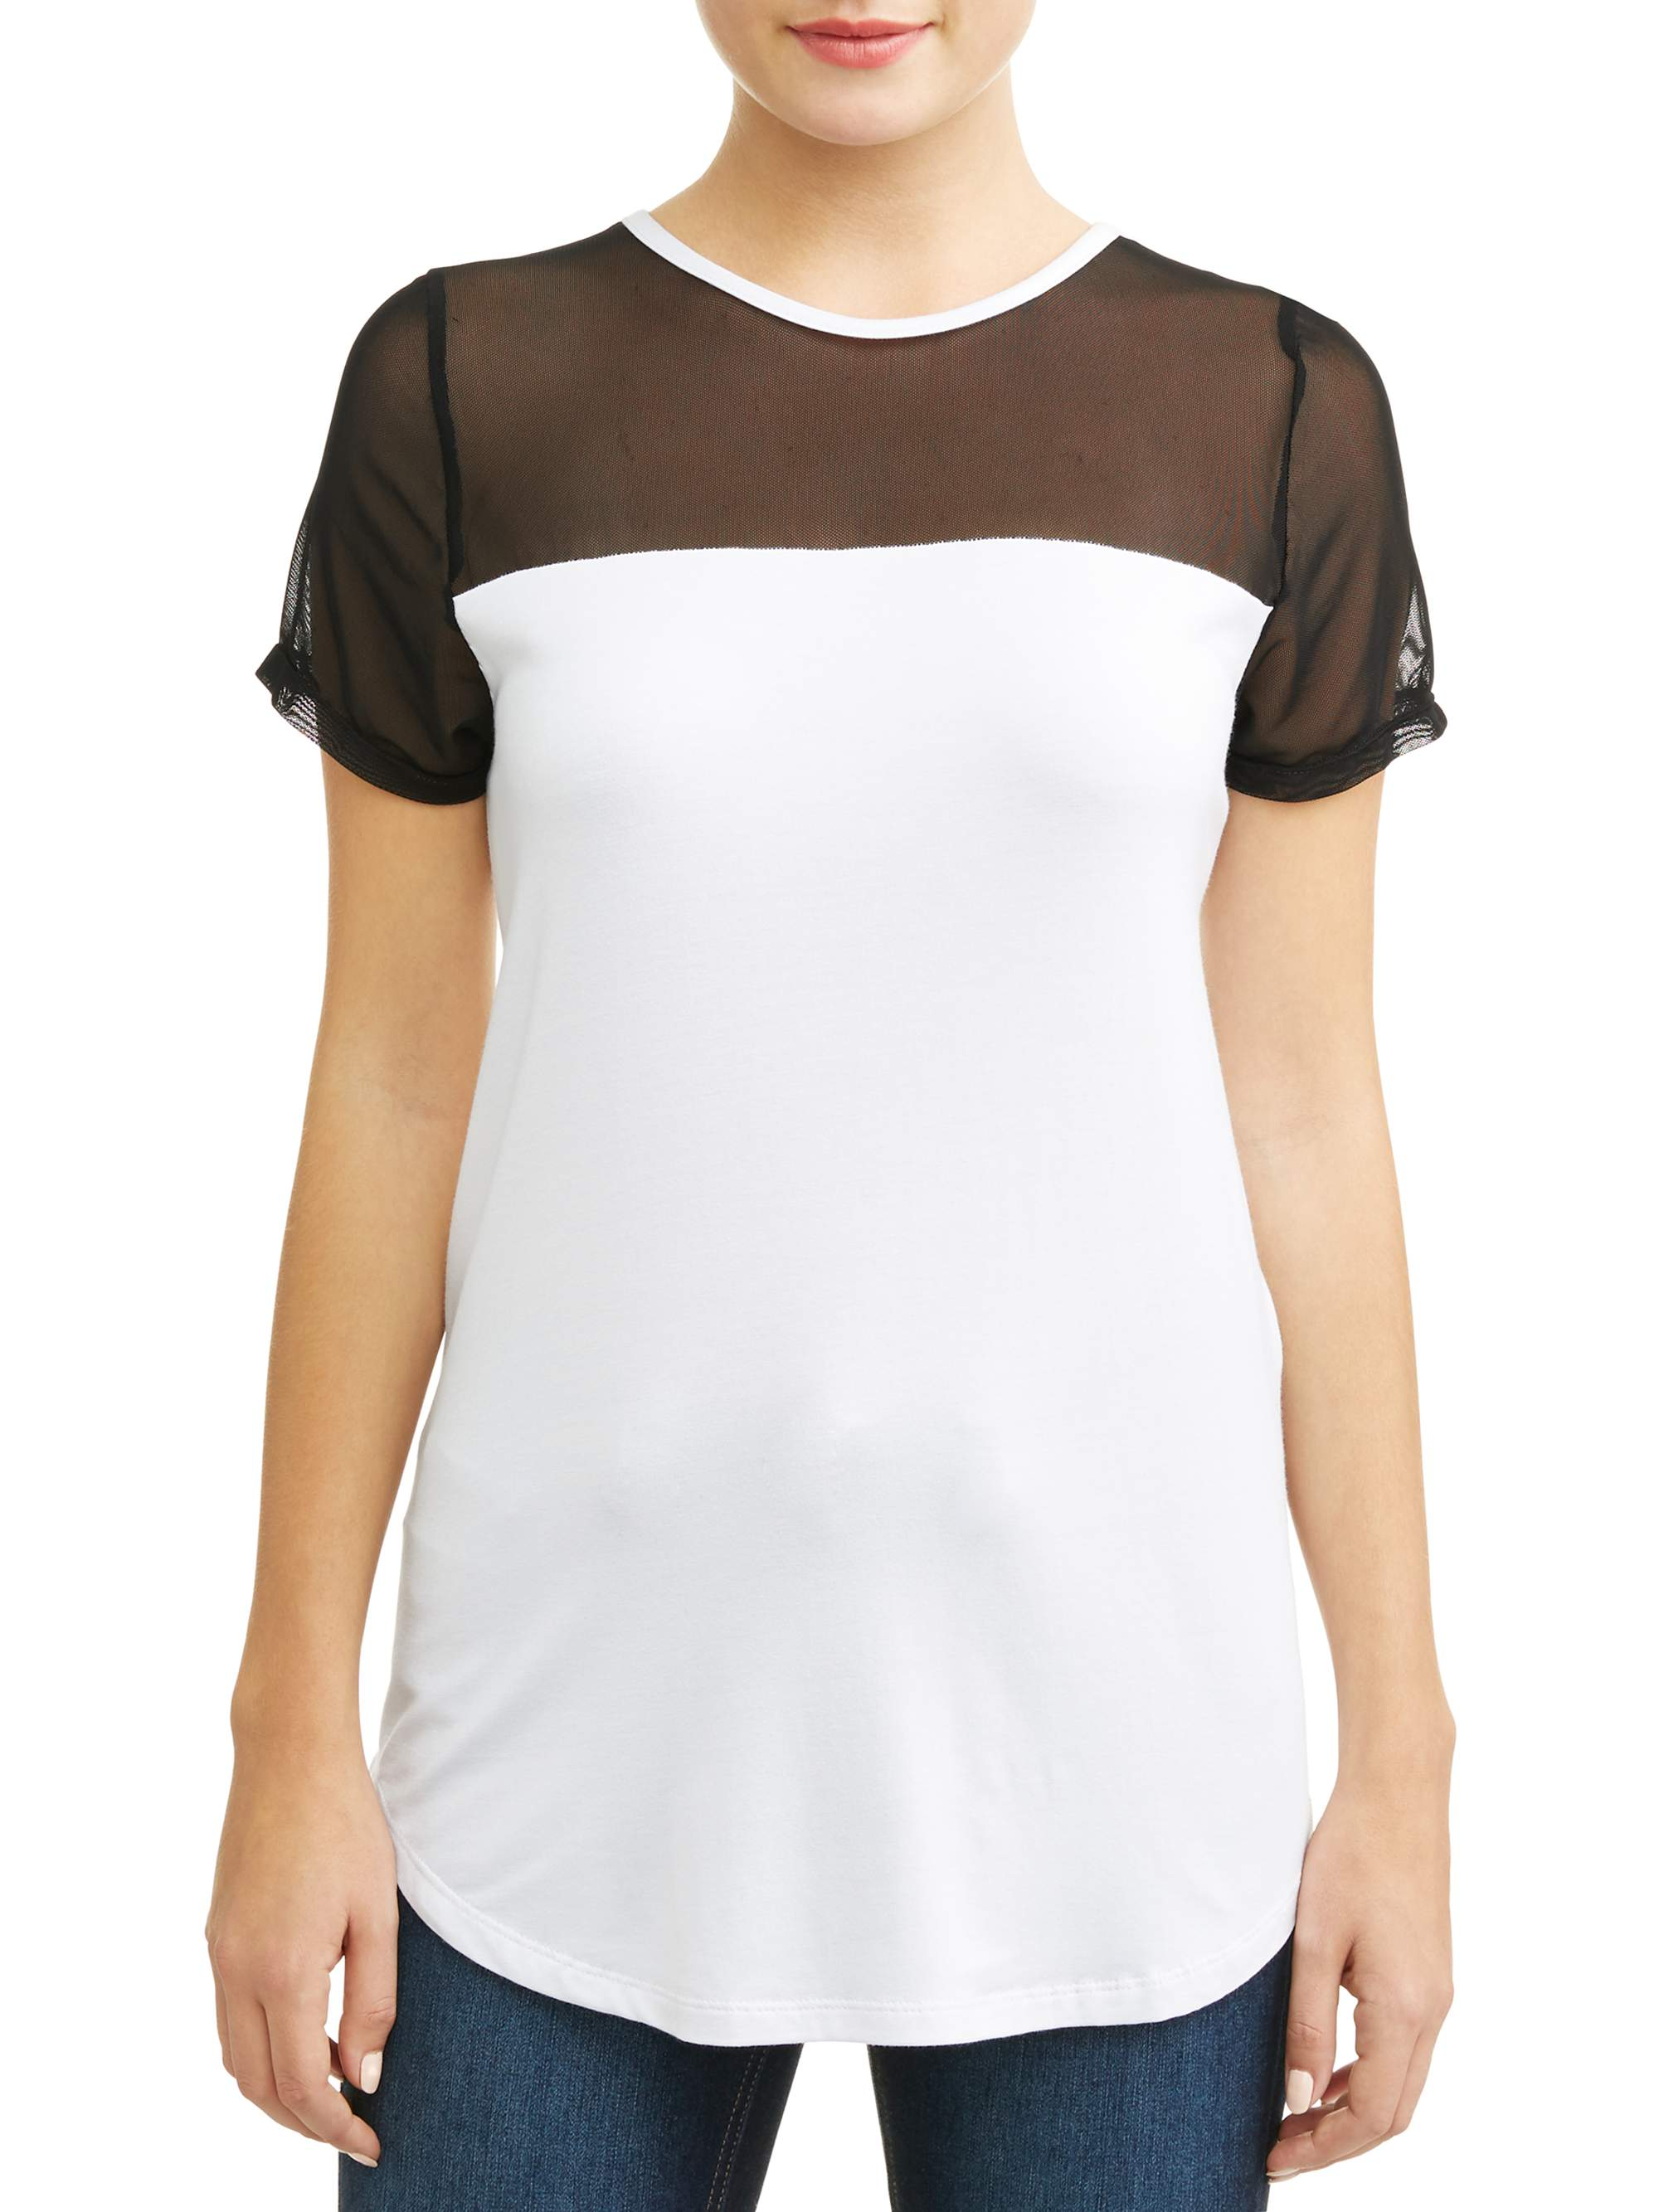 Attitude Unknown Women's Mesh Top Contrast T-Shirt